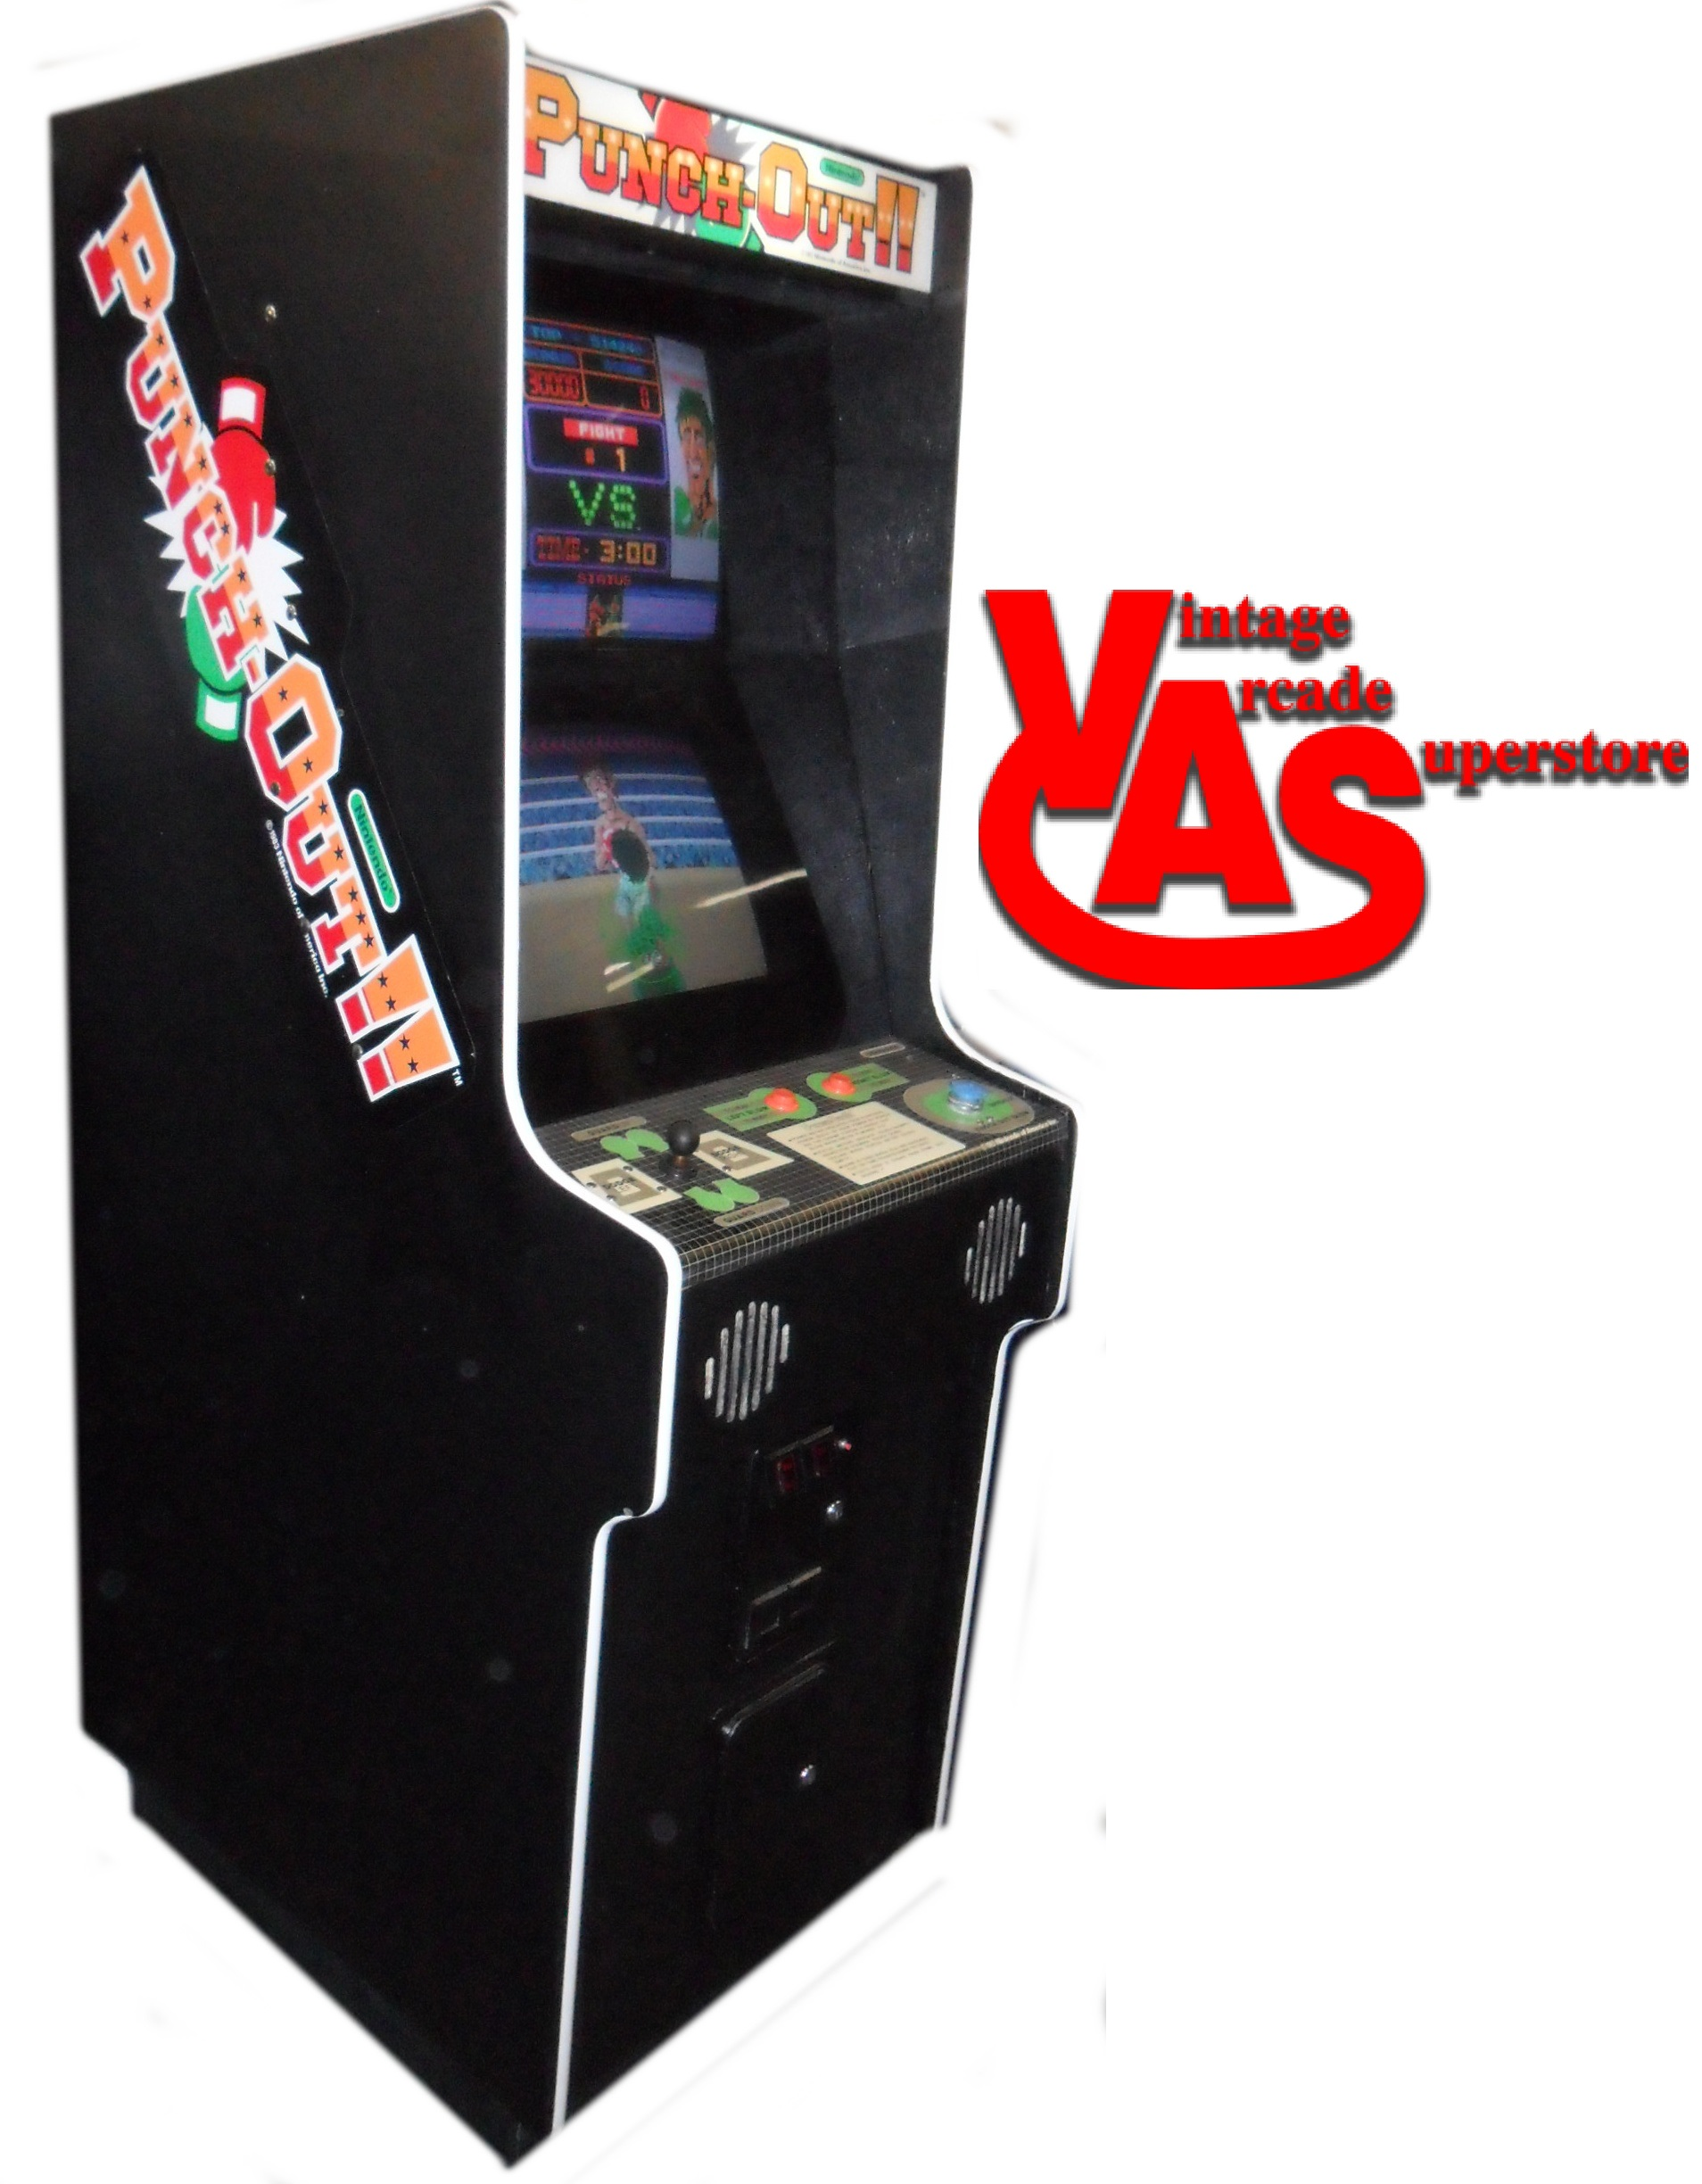 Punchout Arcade Game For Sale Vintage Arcade Superstore